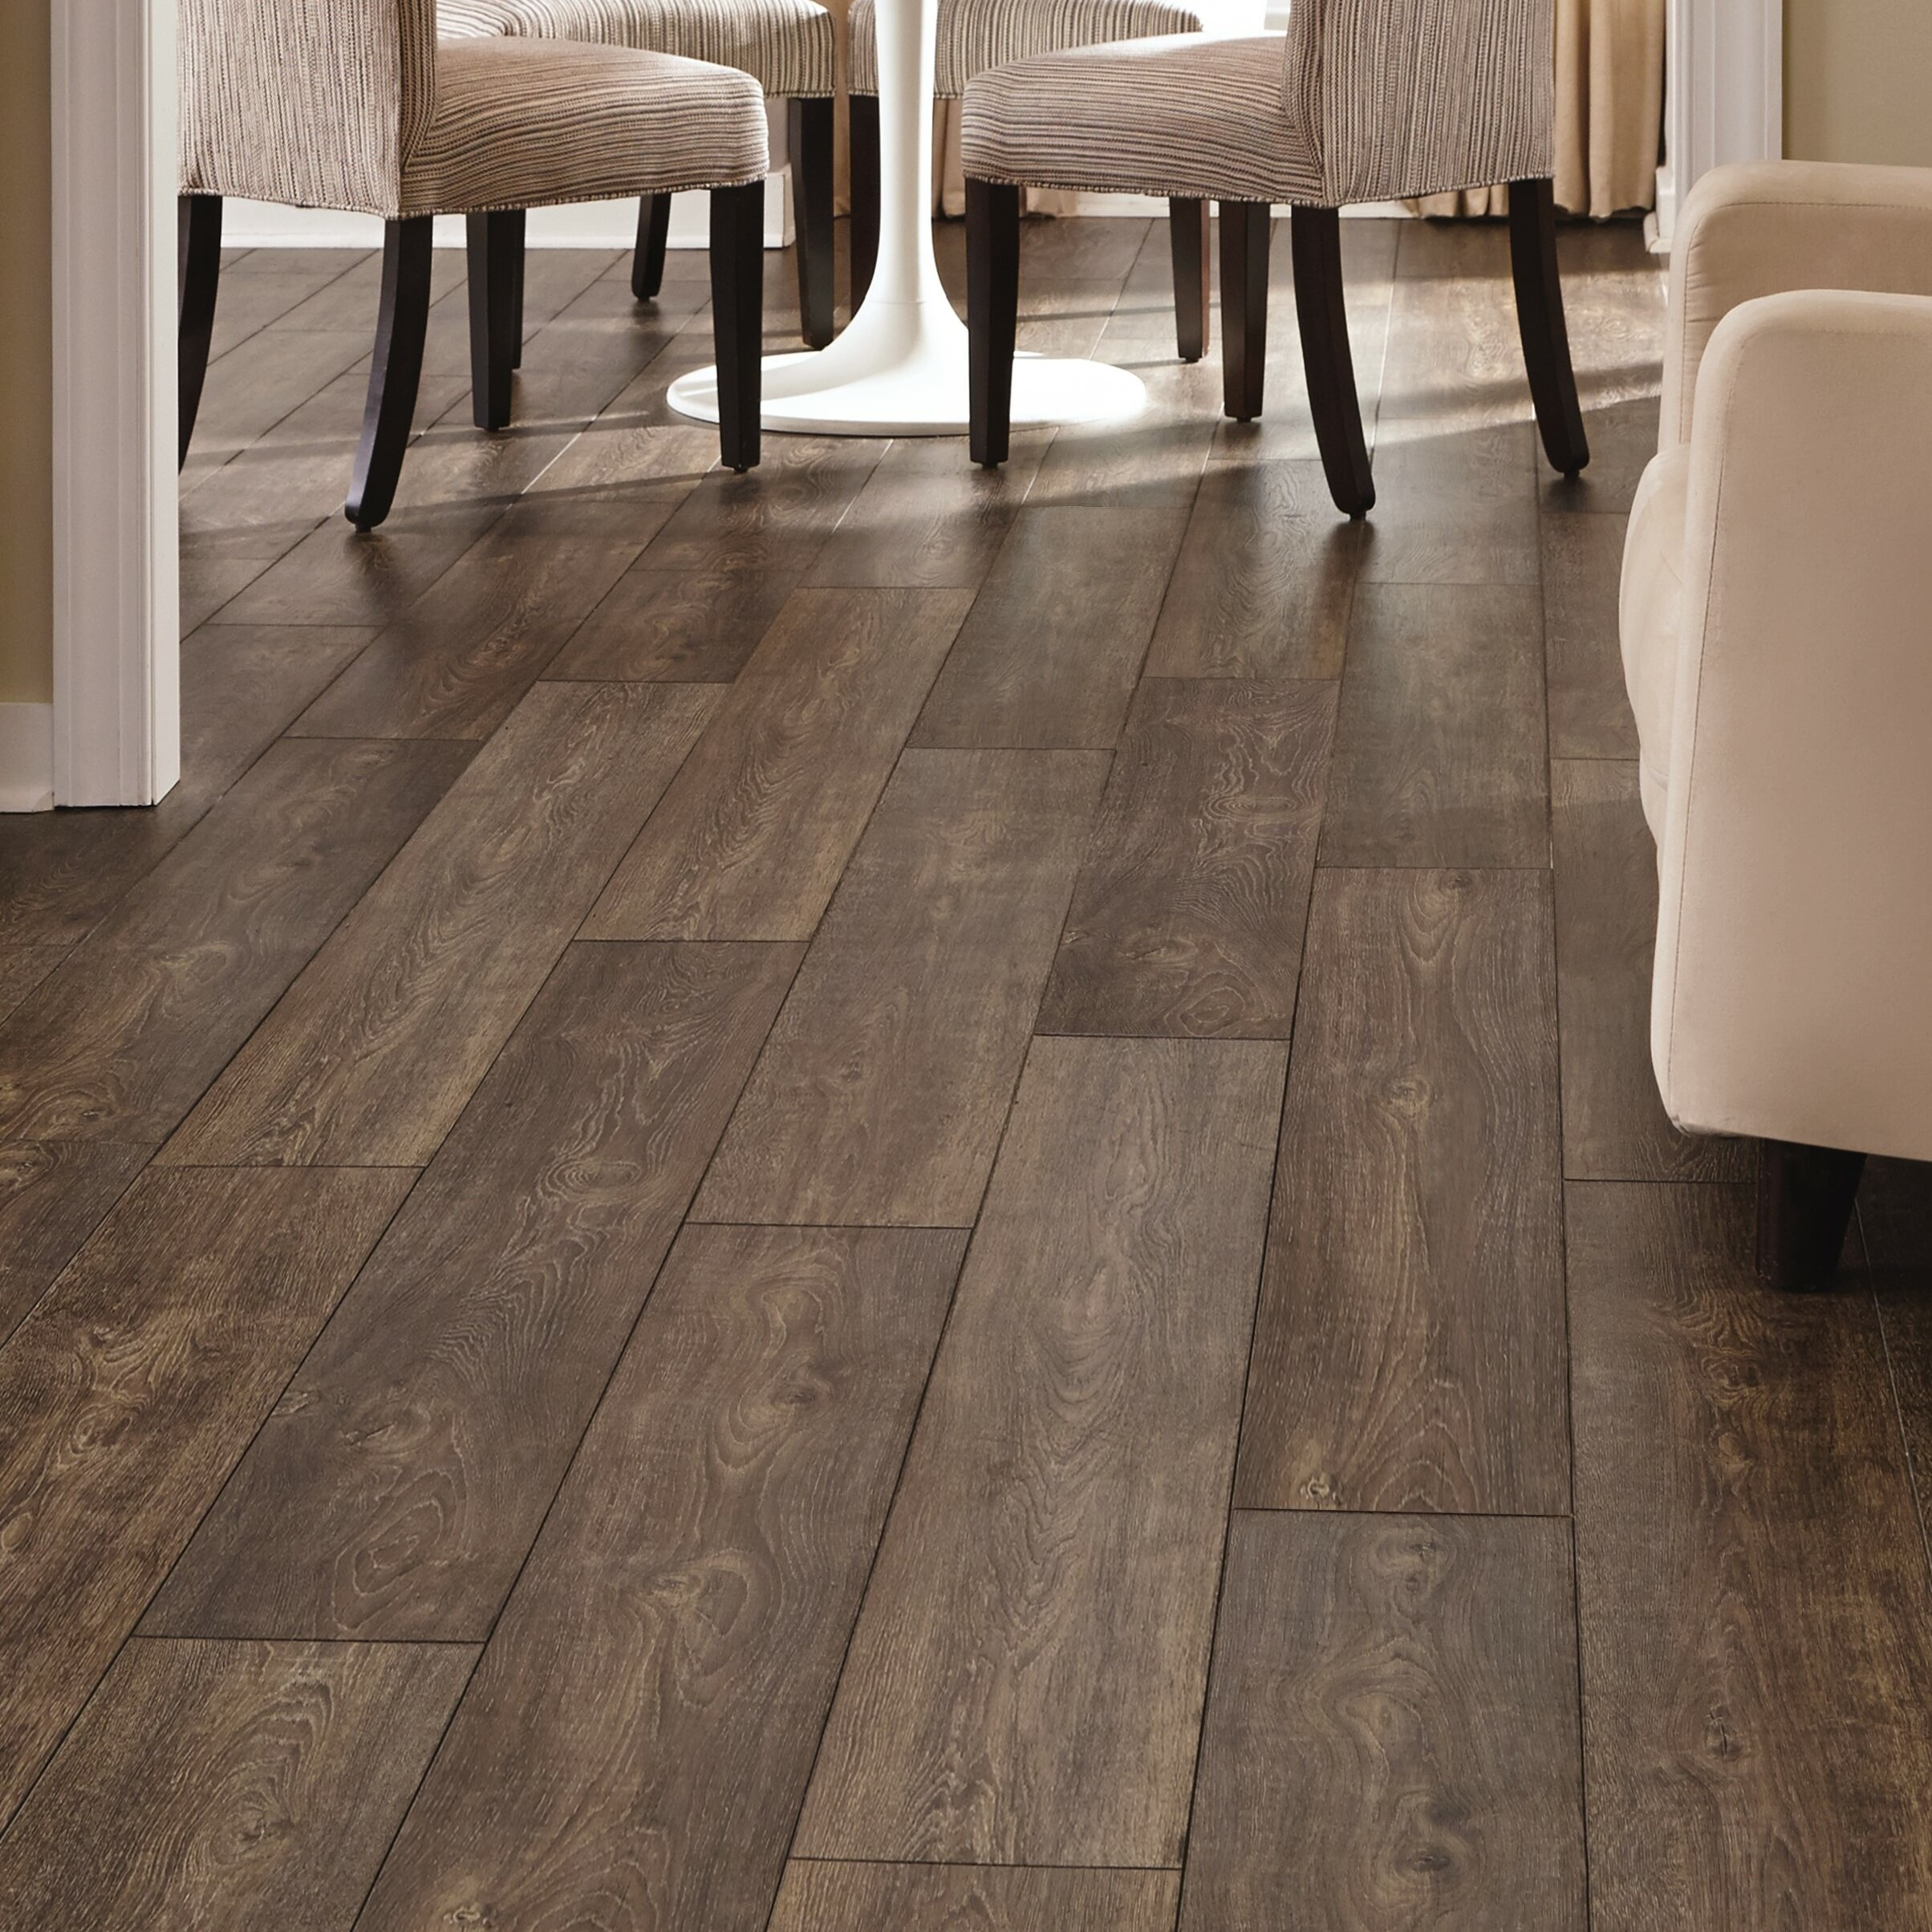 Laminated Flooring Special Characters And Specifications Mannington Restoration Wide Plank 8u0027u0027 x 51u0027u0027 x 12mm Oak Laminate Flooring  in Caraway | Wayfair